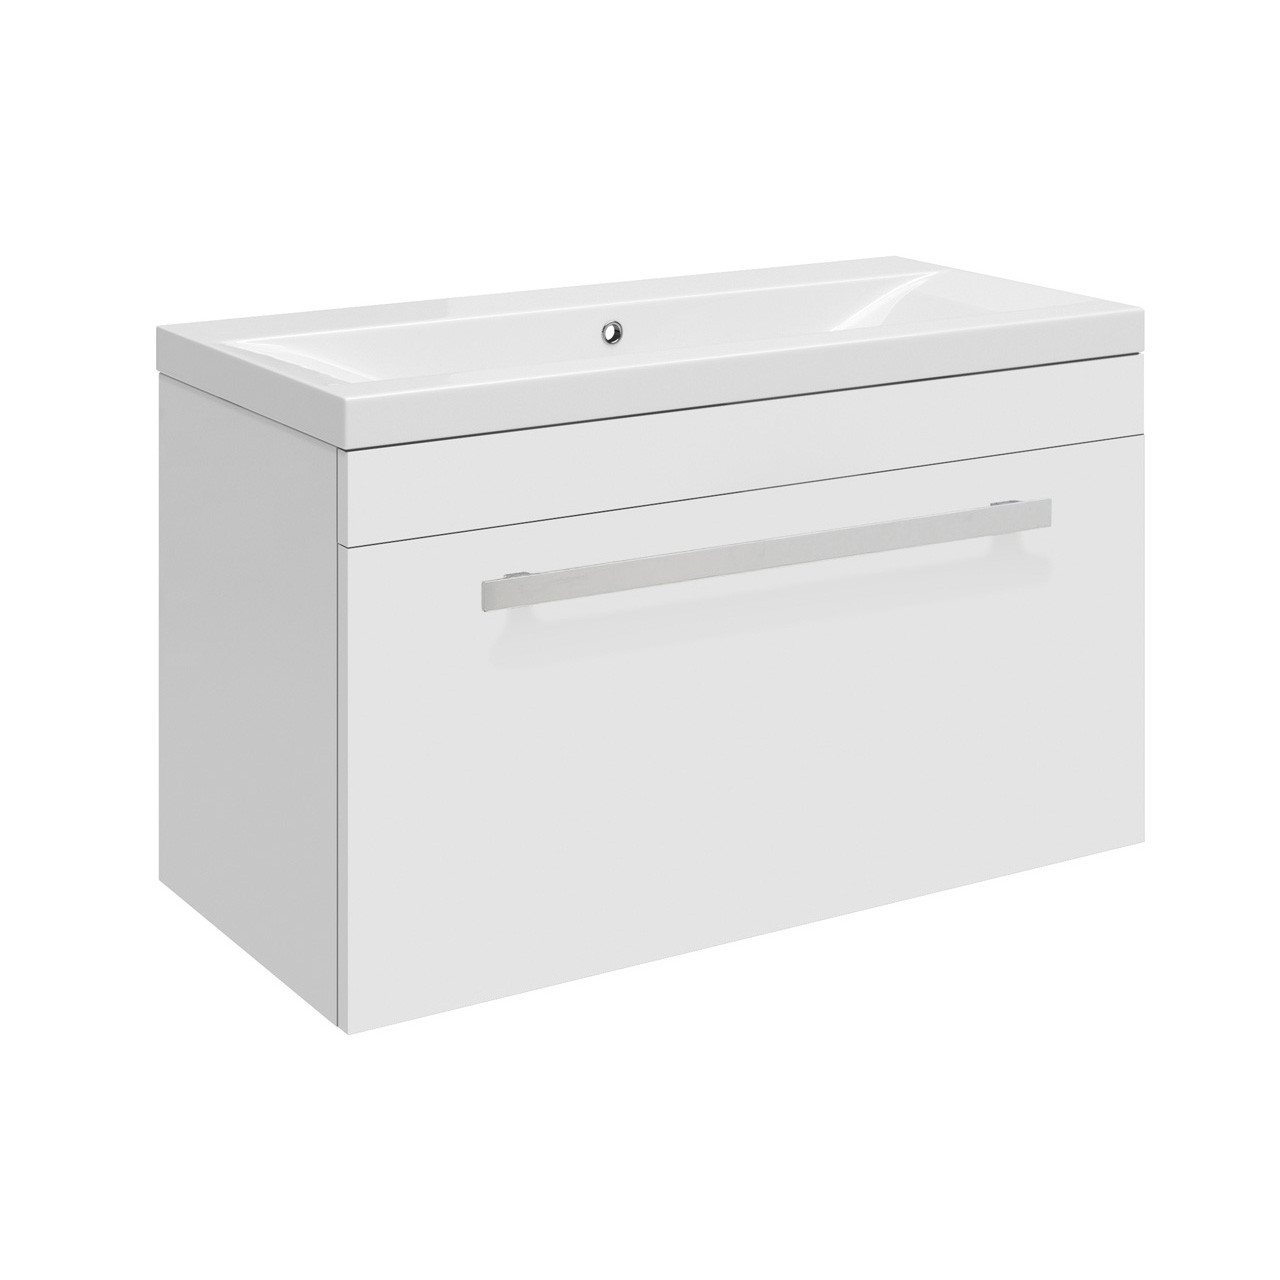 Premier Design Gloss White High Gloss White Wall Hung 600mm Cabinet & 40mm profile Basin - CAB148 & NVM013